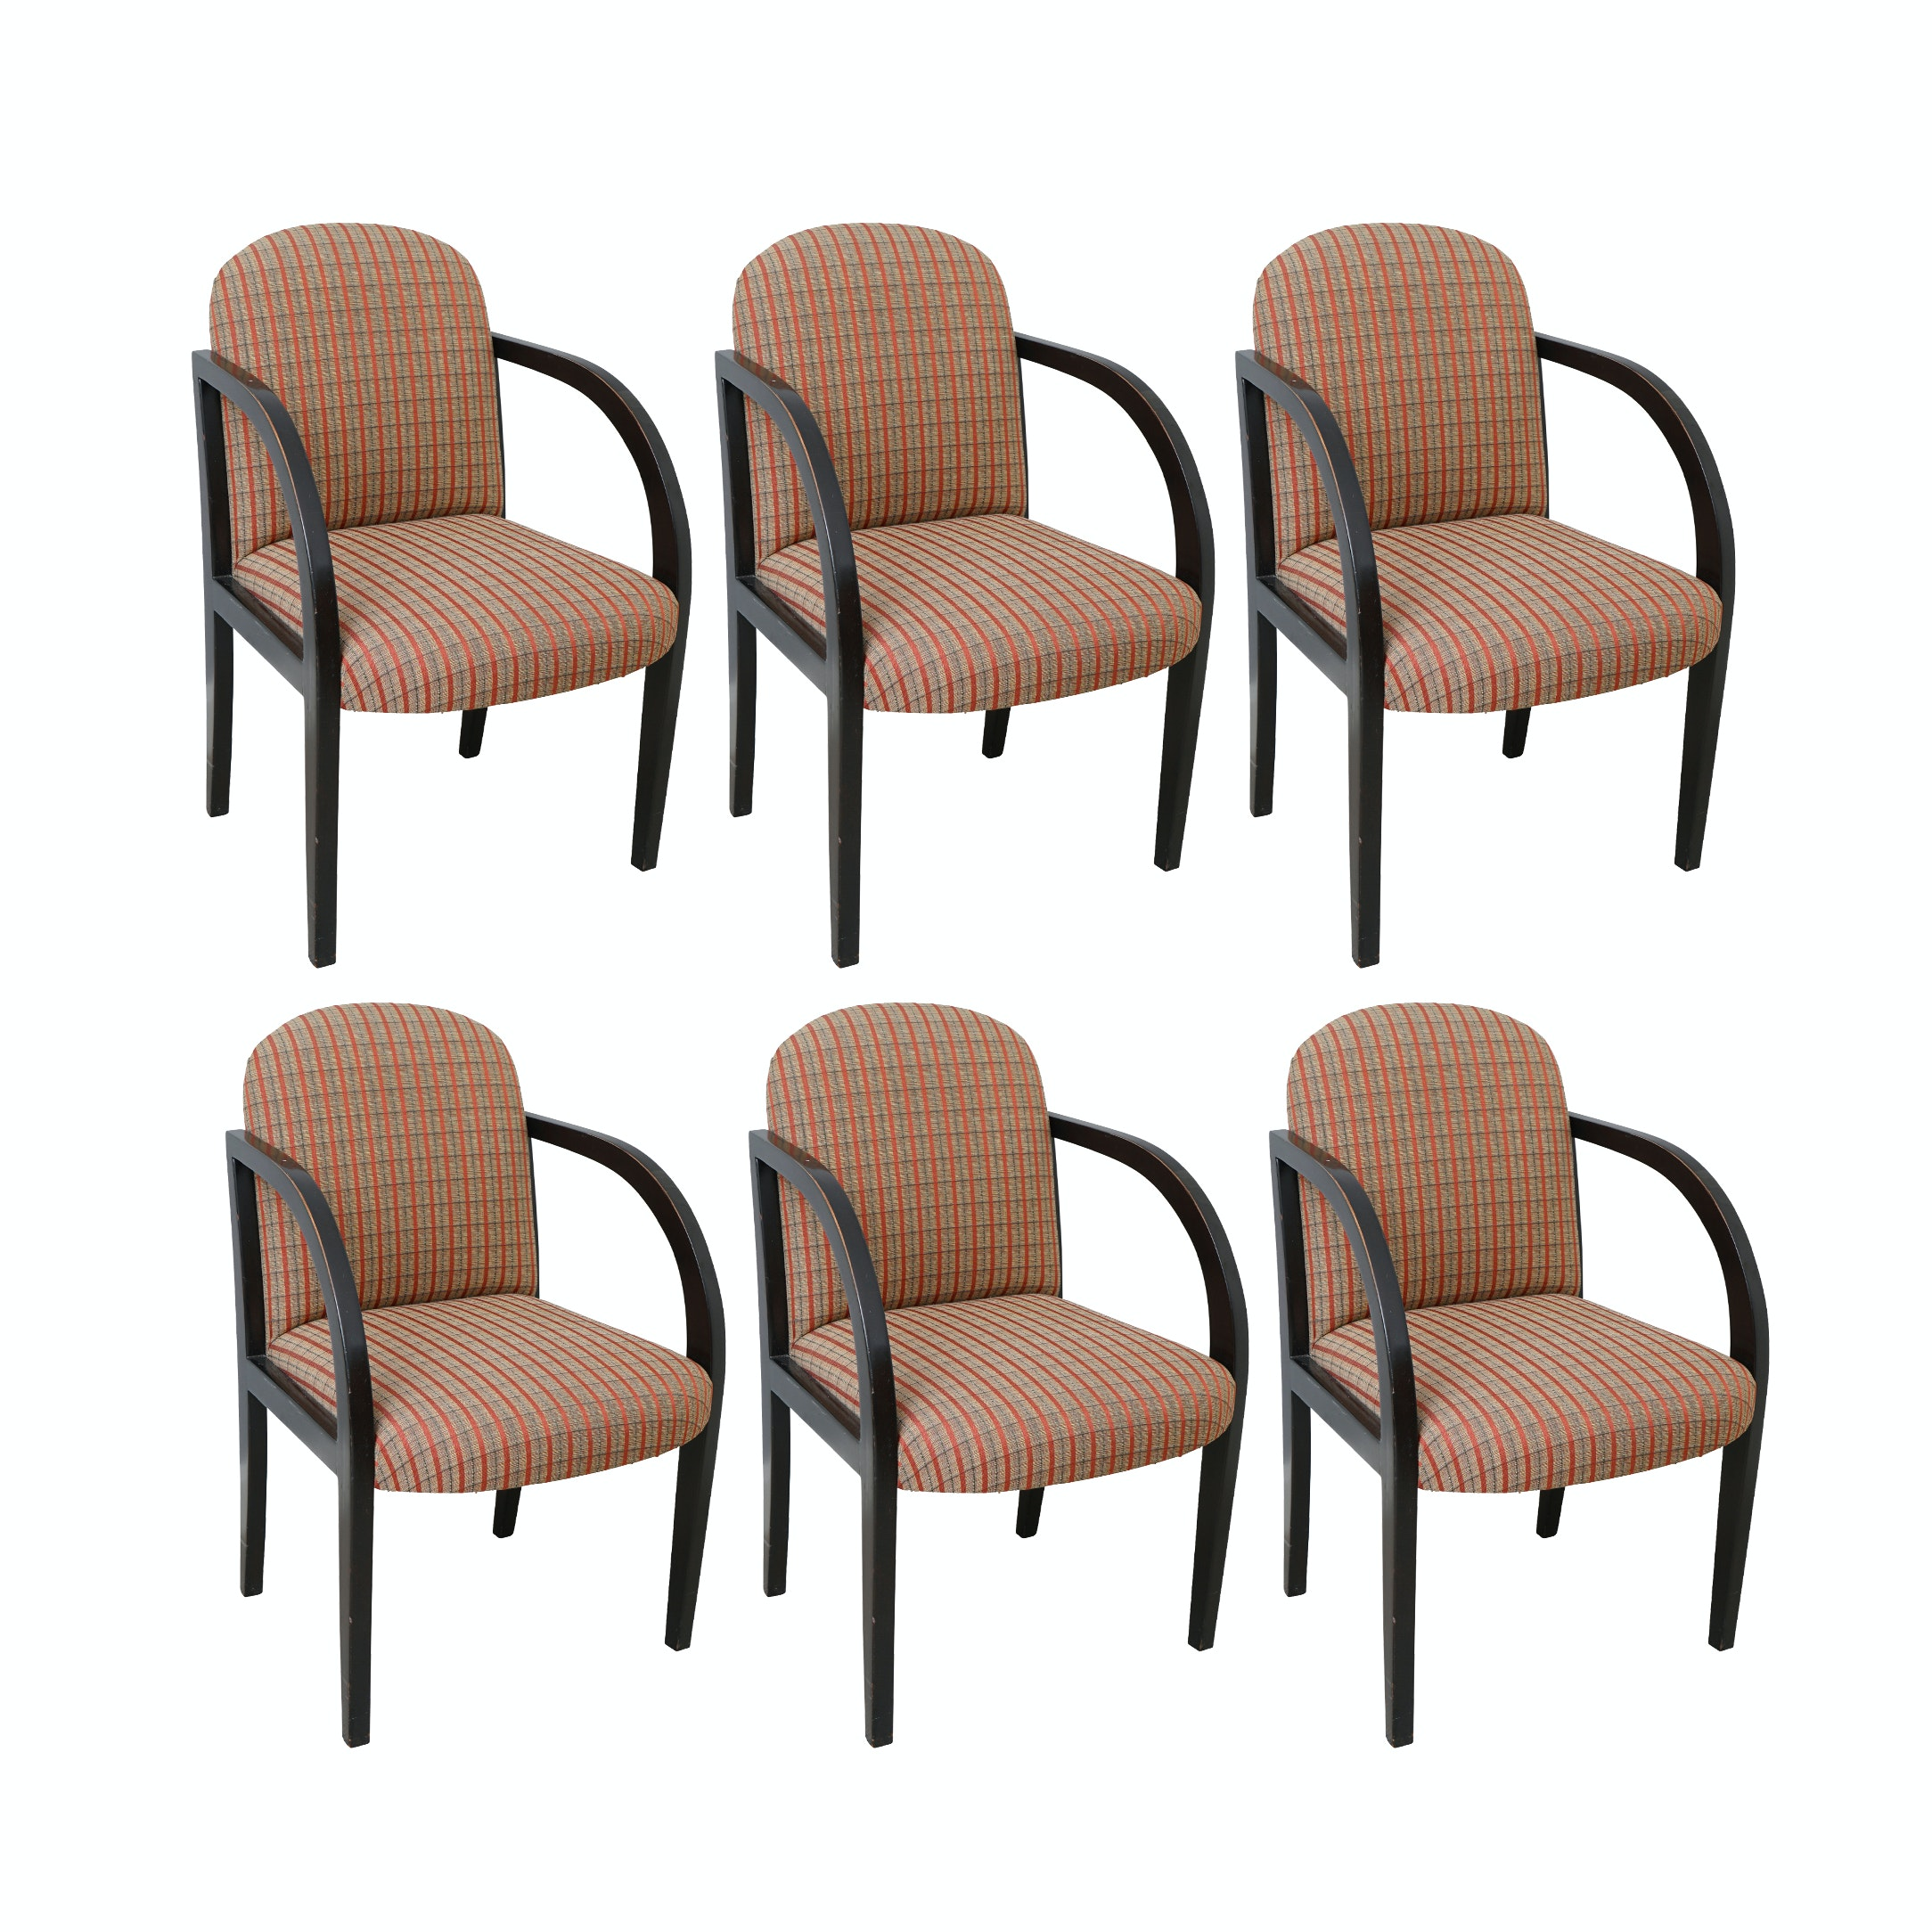 Plaid Upholstered Dining Chair Set